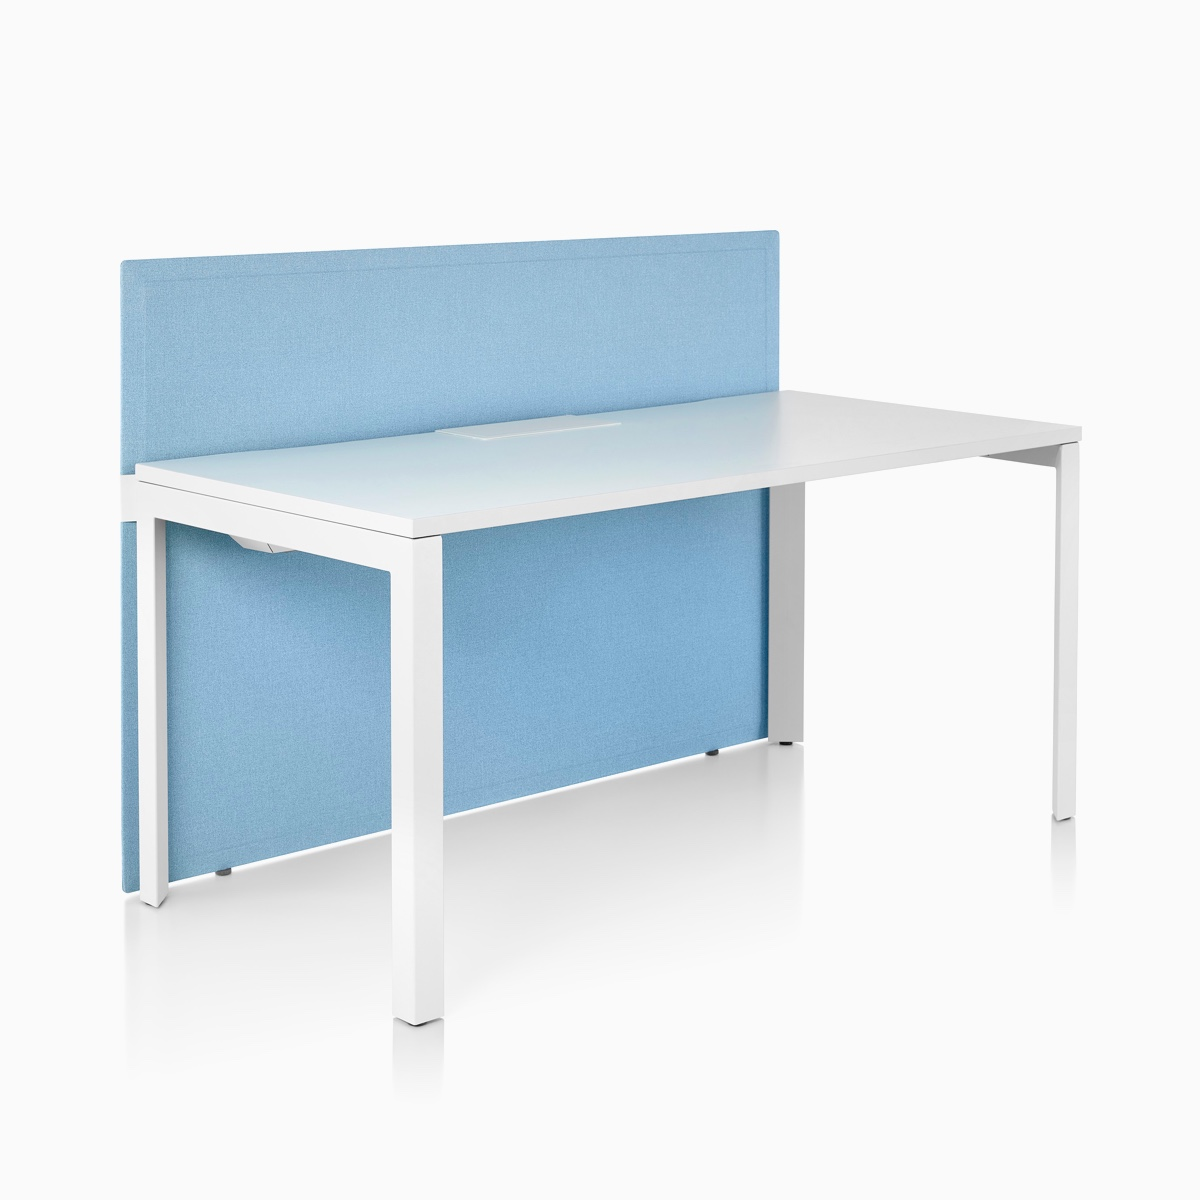 A light blue fabric Pari Freestanding Screen attached to the front side of a white Layout Studio single-sided bench.